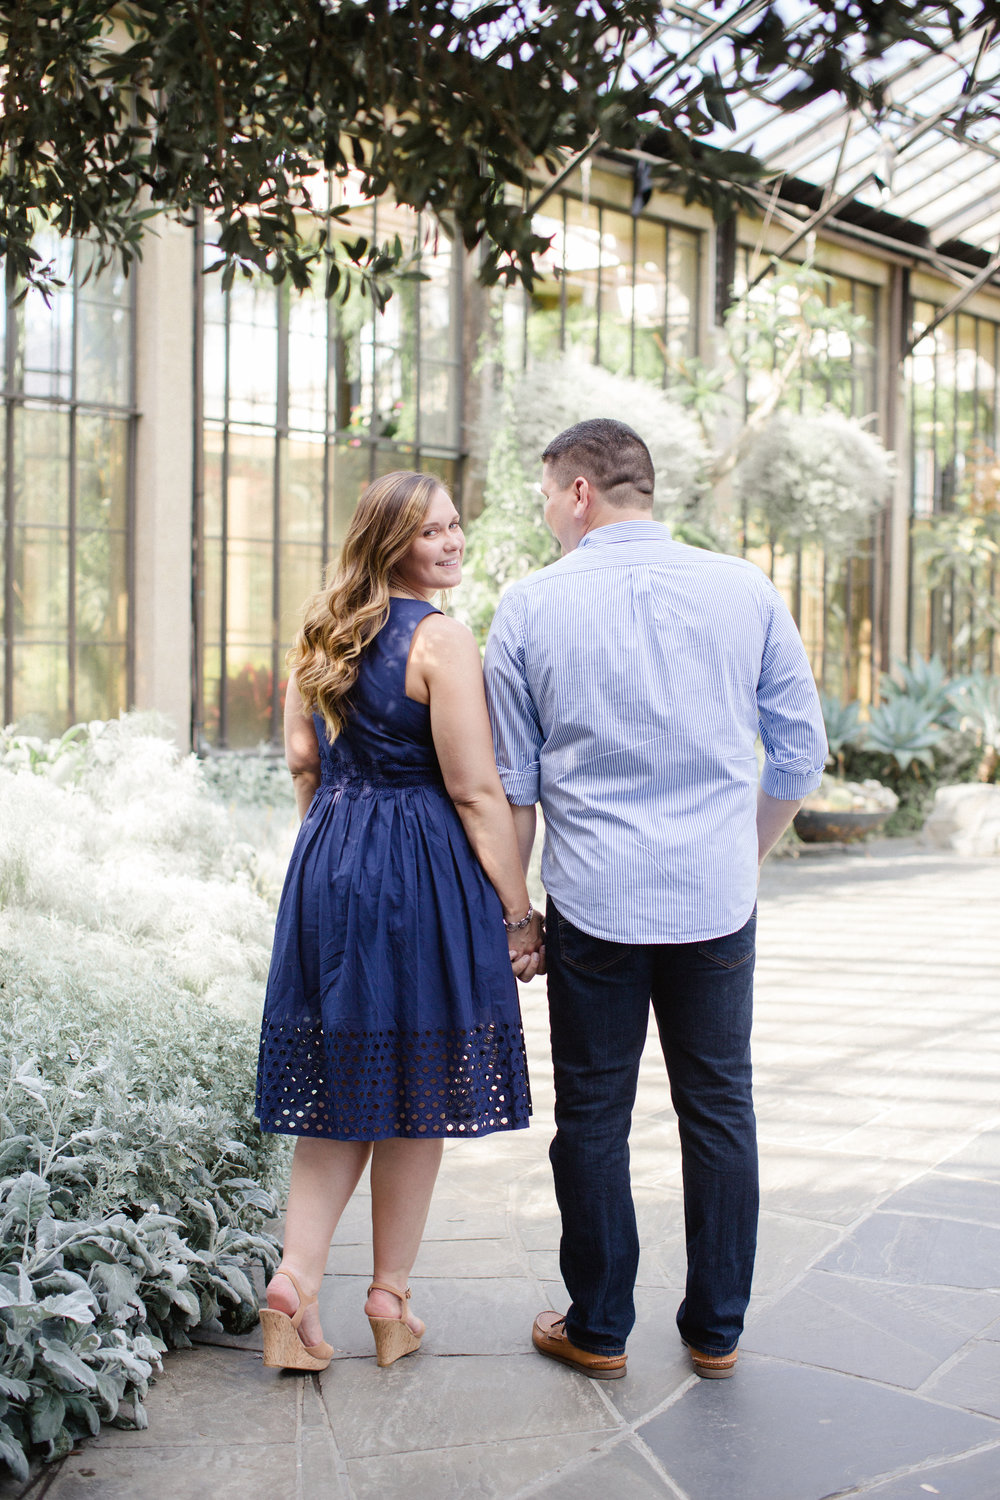 Longwood Gardens Engagement Session Photos Scranton PA Photographers Philly Photographers_JDP-23.jpg